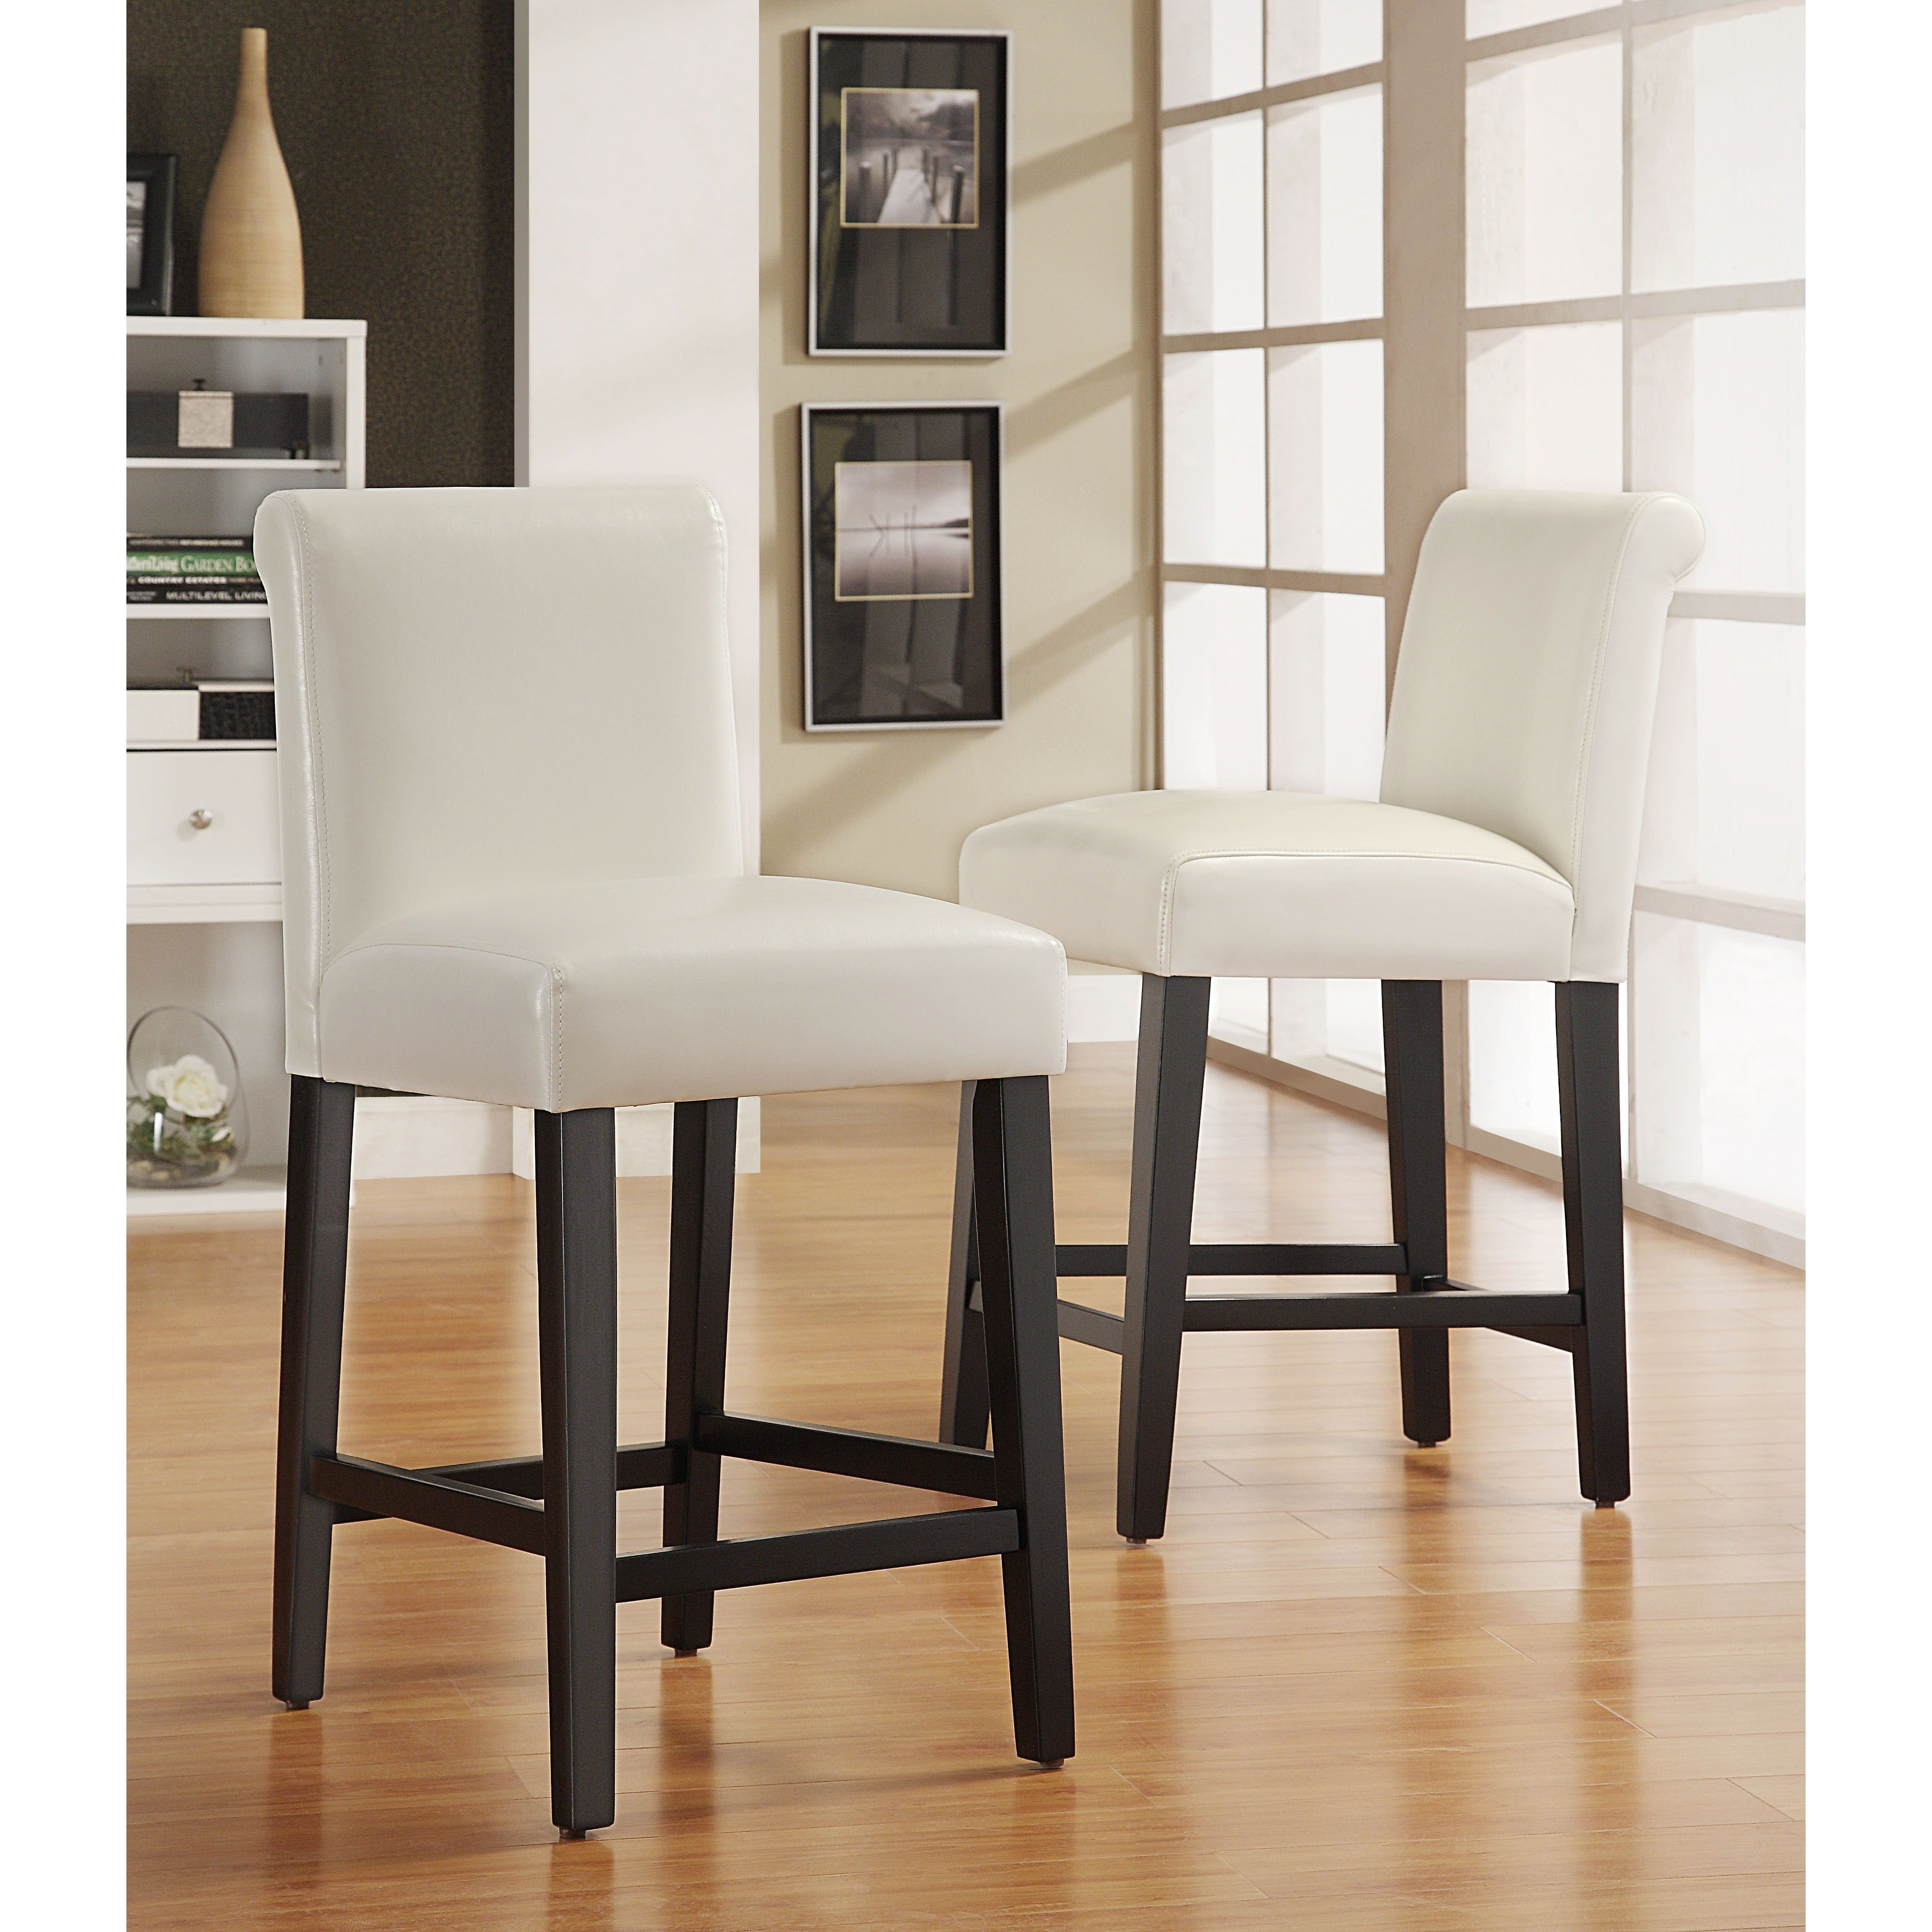 Pleasing Bennett White Faux Leather 24 Inch Counter Height High Back Stools Set Of 2 By Inspire Q Bold Gamerscity Chair Design For Home Gamerscityorg